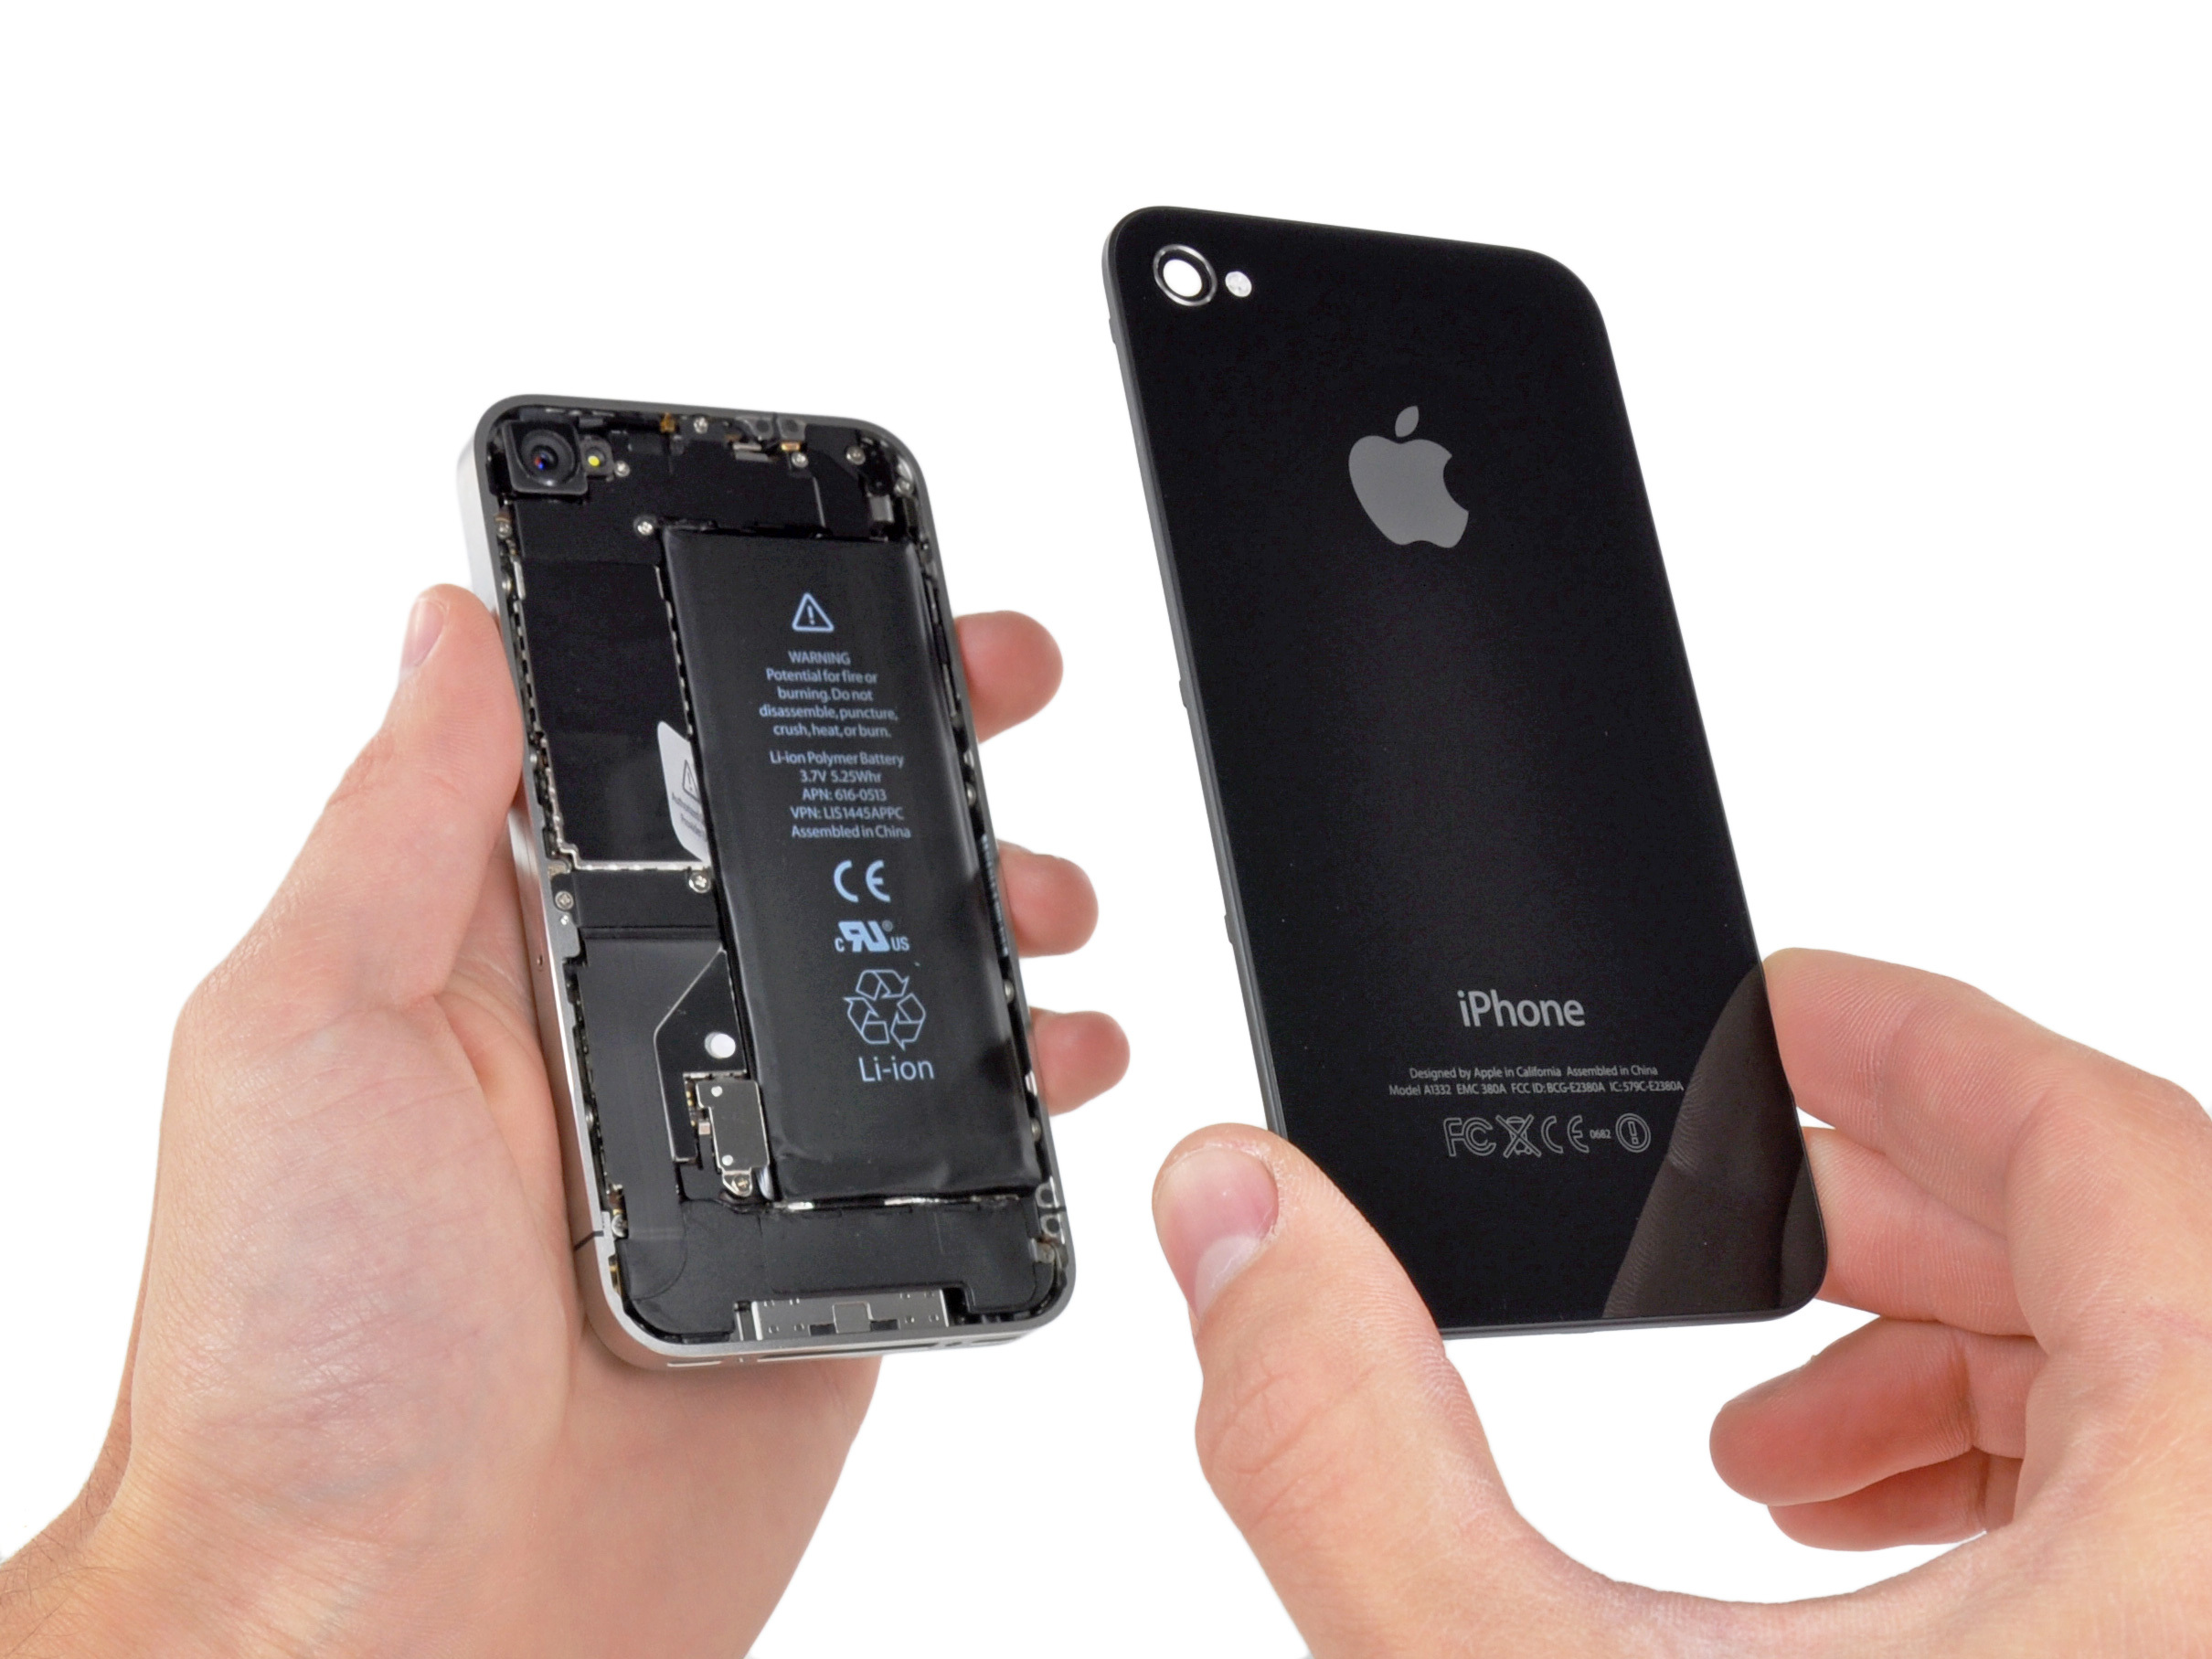 iphone 4 rear panel replacement ifixit. Black Bedroom Furniture Sets. Home Design Ideas